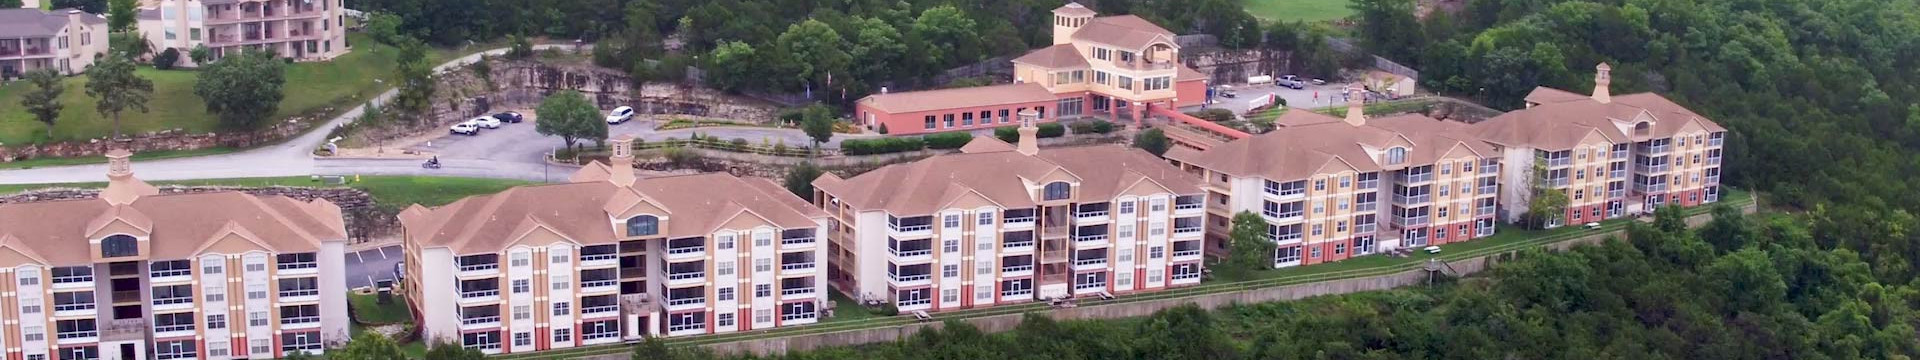 Overview Branson Table Rock Lake Resort at Emerald Pointe | Resort Building Overlooking Table Rock Lake